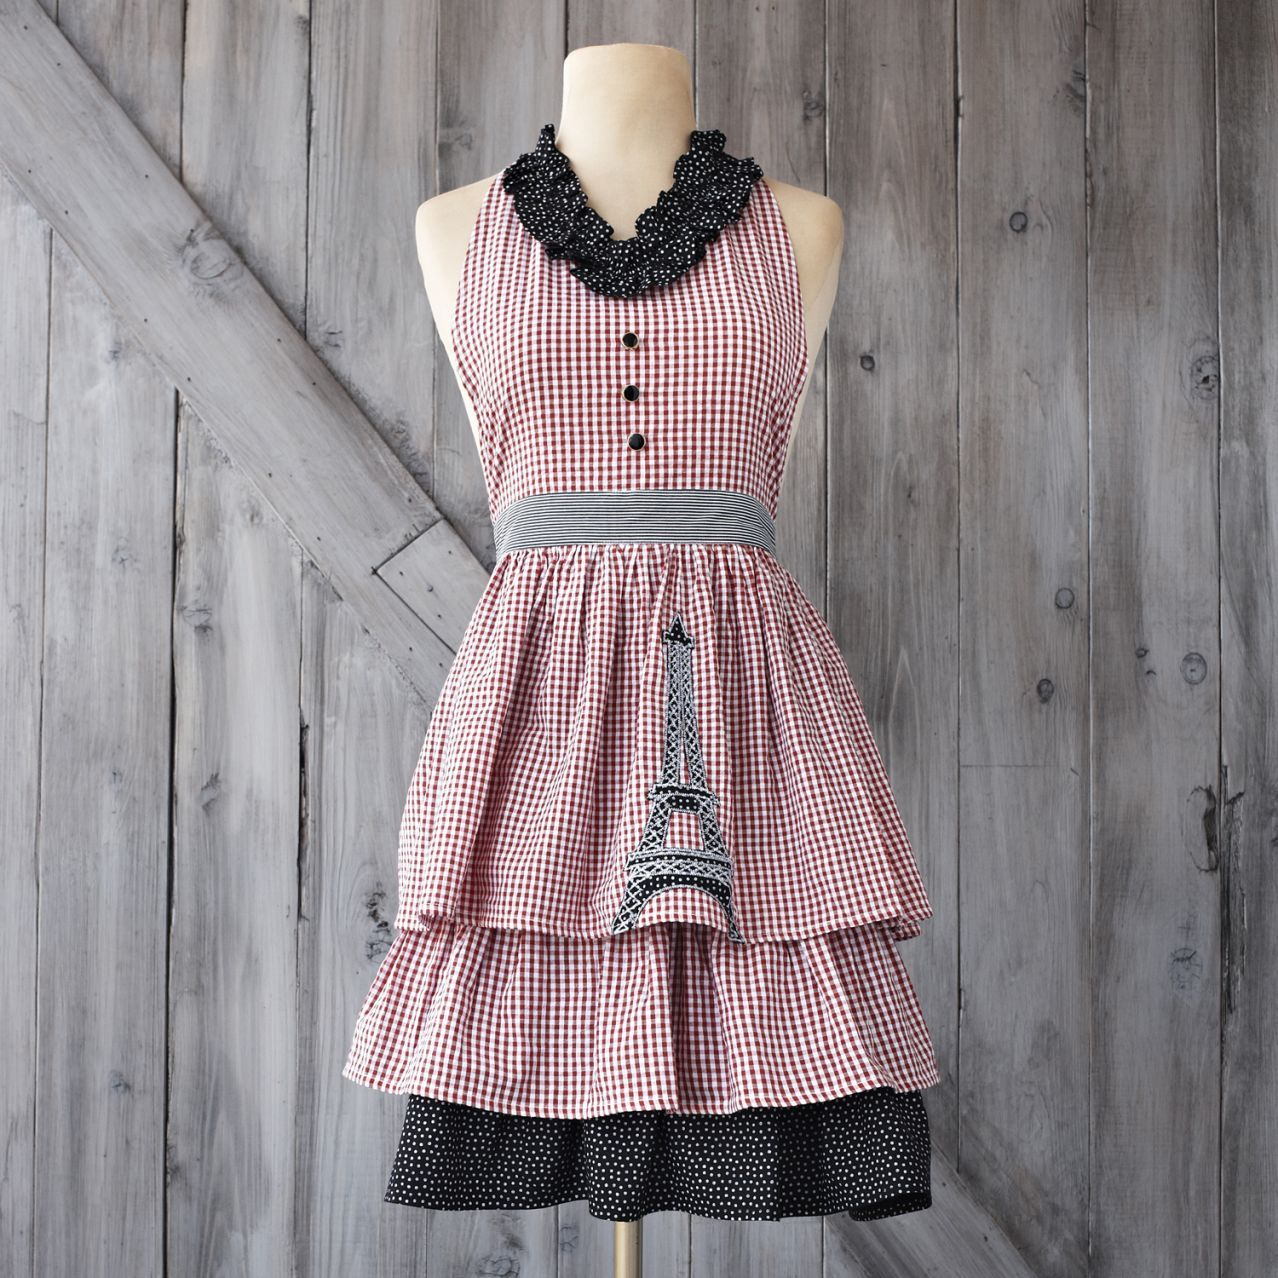 La Tour Eiffel Vintage Inspired Apron At Sur La Table Sew